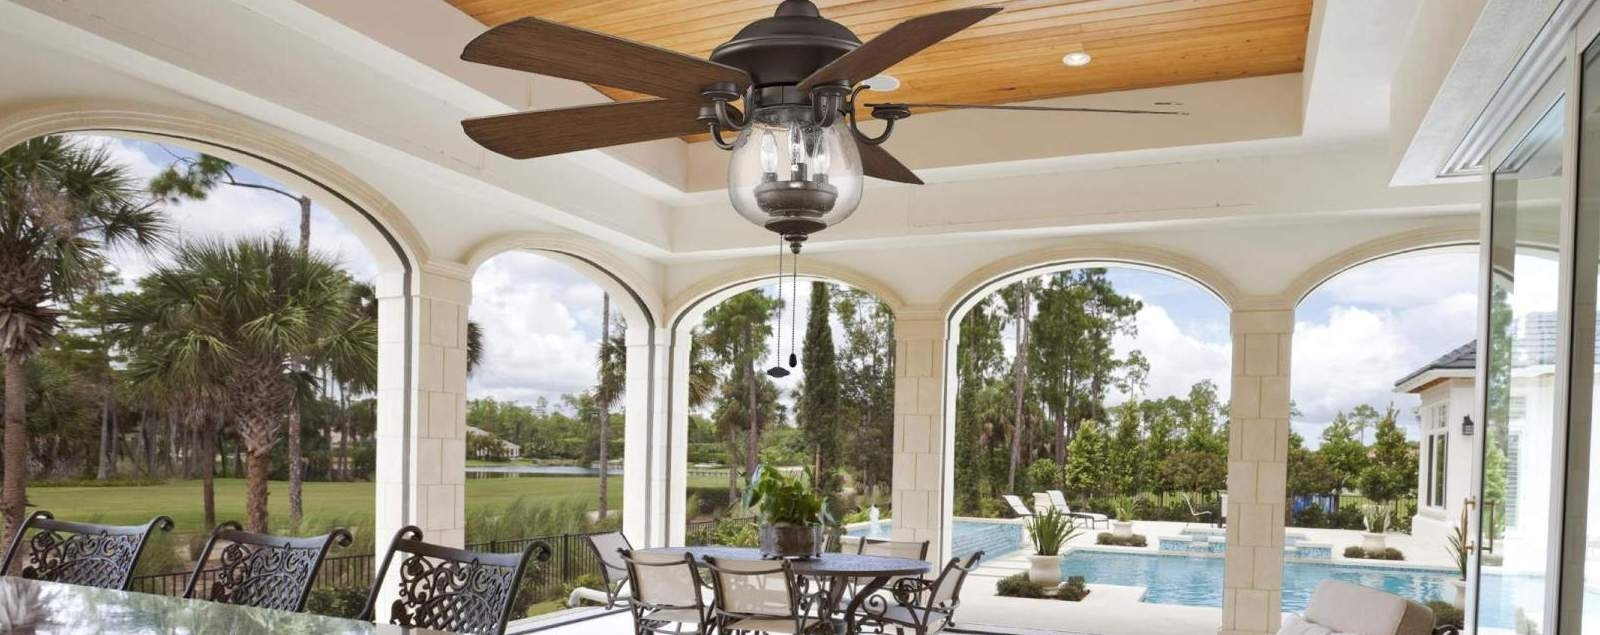 Gold Coast Outdoor Ceiling Fans Throughout Most Current Outdoor Ceiling Fans – Shop Wet, Dry, And Damp Rated Outdoor Fans (View 19 of 20)